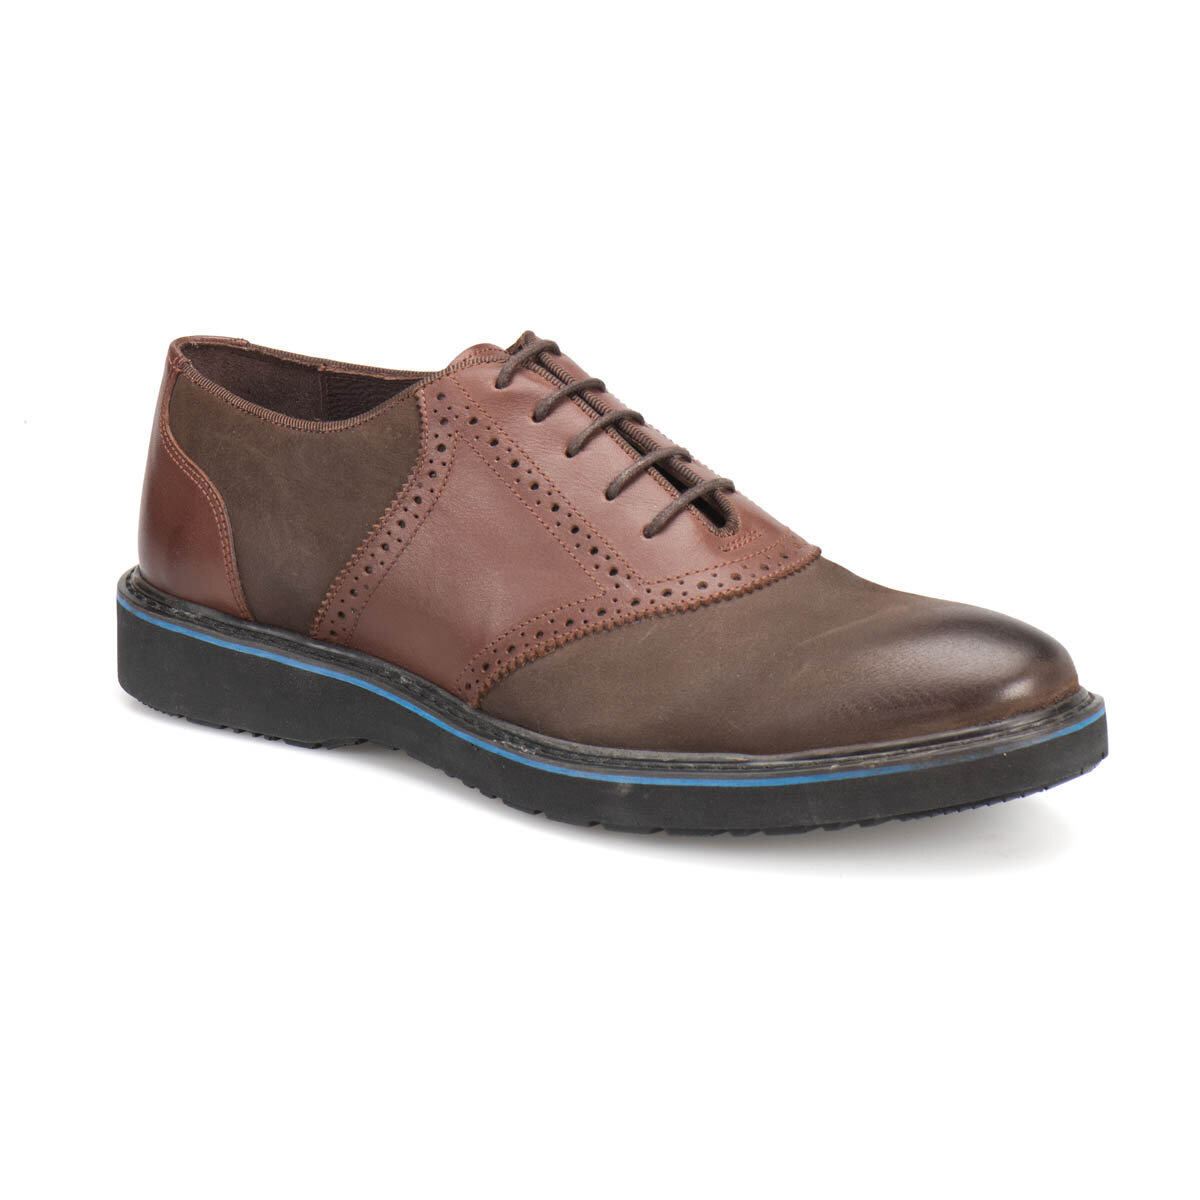 FLO 2068 Brown Men Shoes Garamond